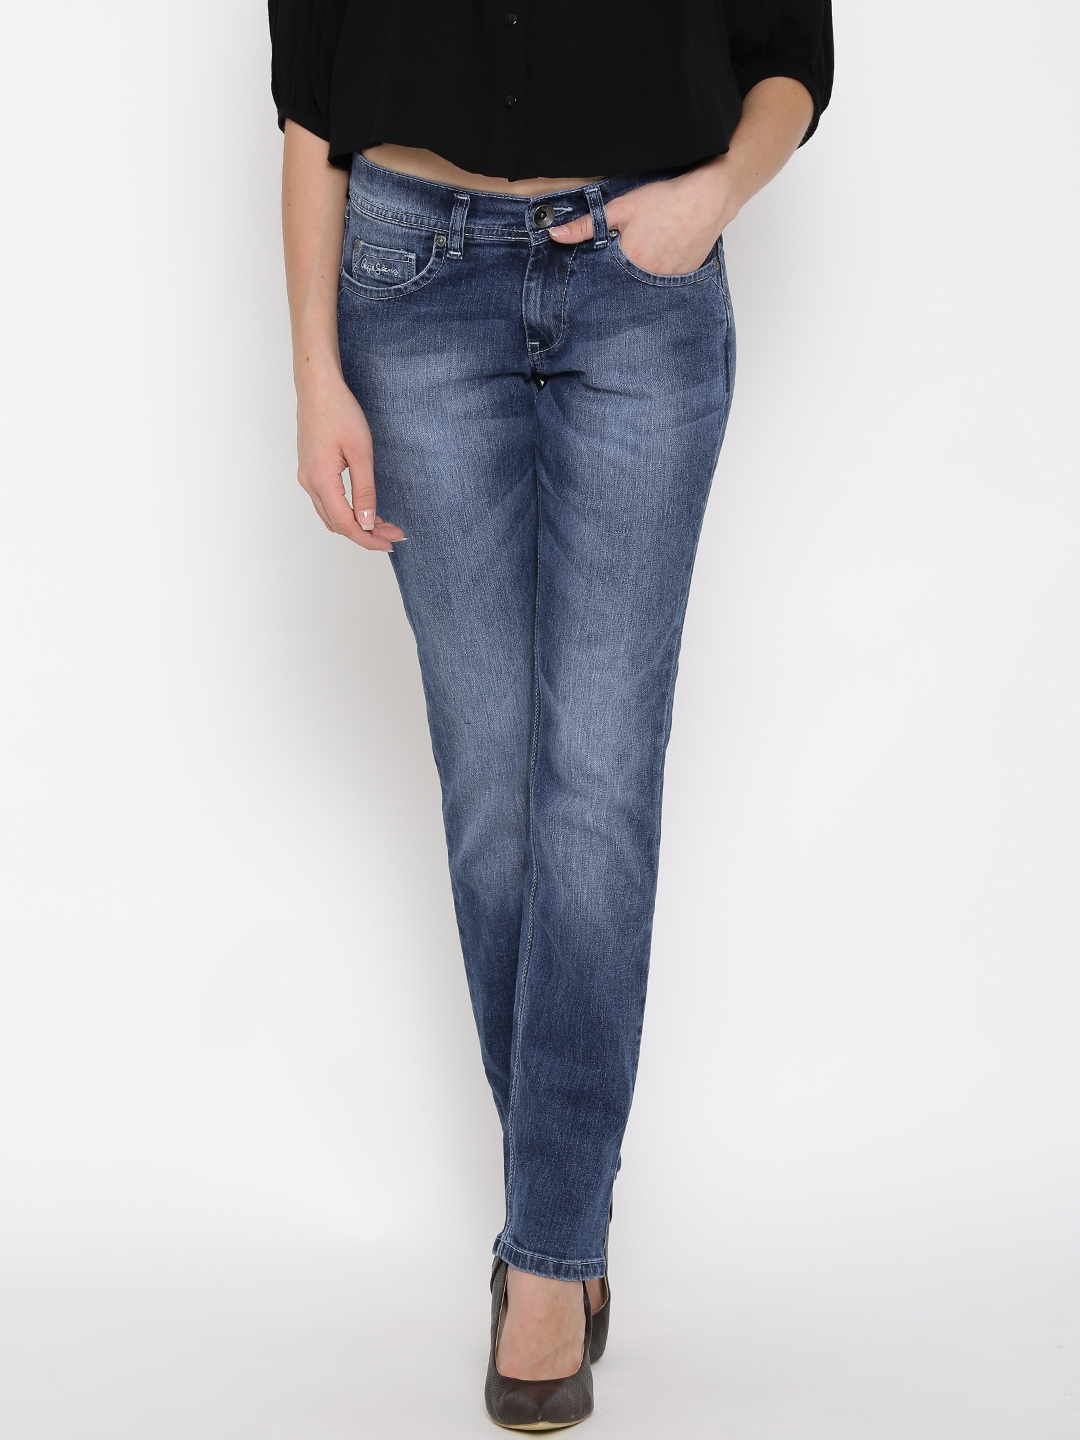 03c97149022 Buy Pepe Jeans Blue Washed Elite Fit Jeans - Jeans for Women 1189166 ...